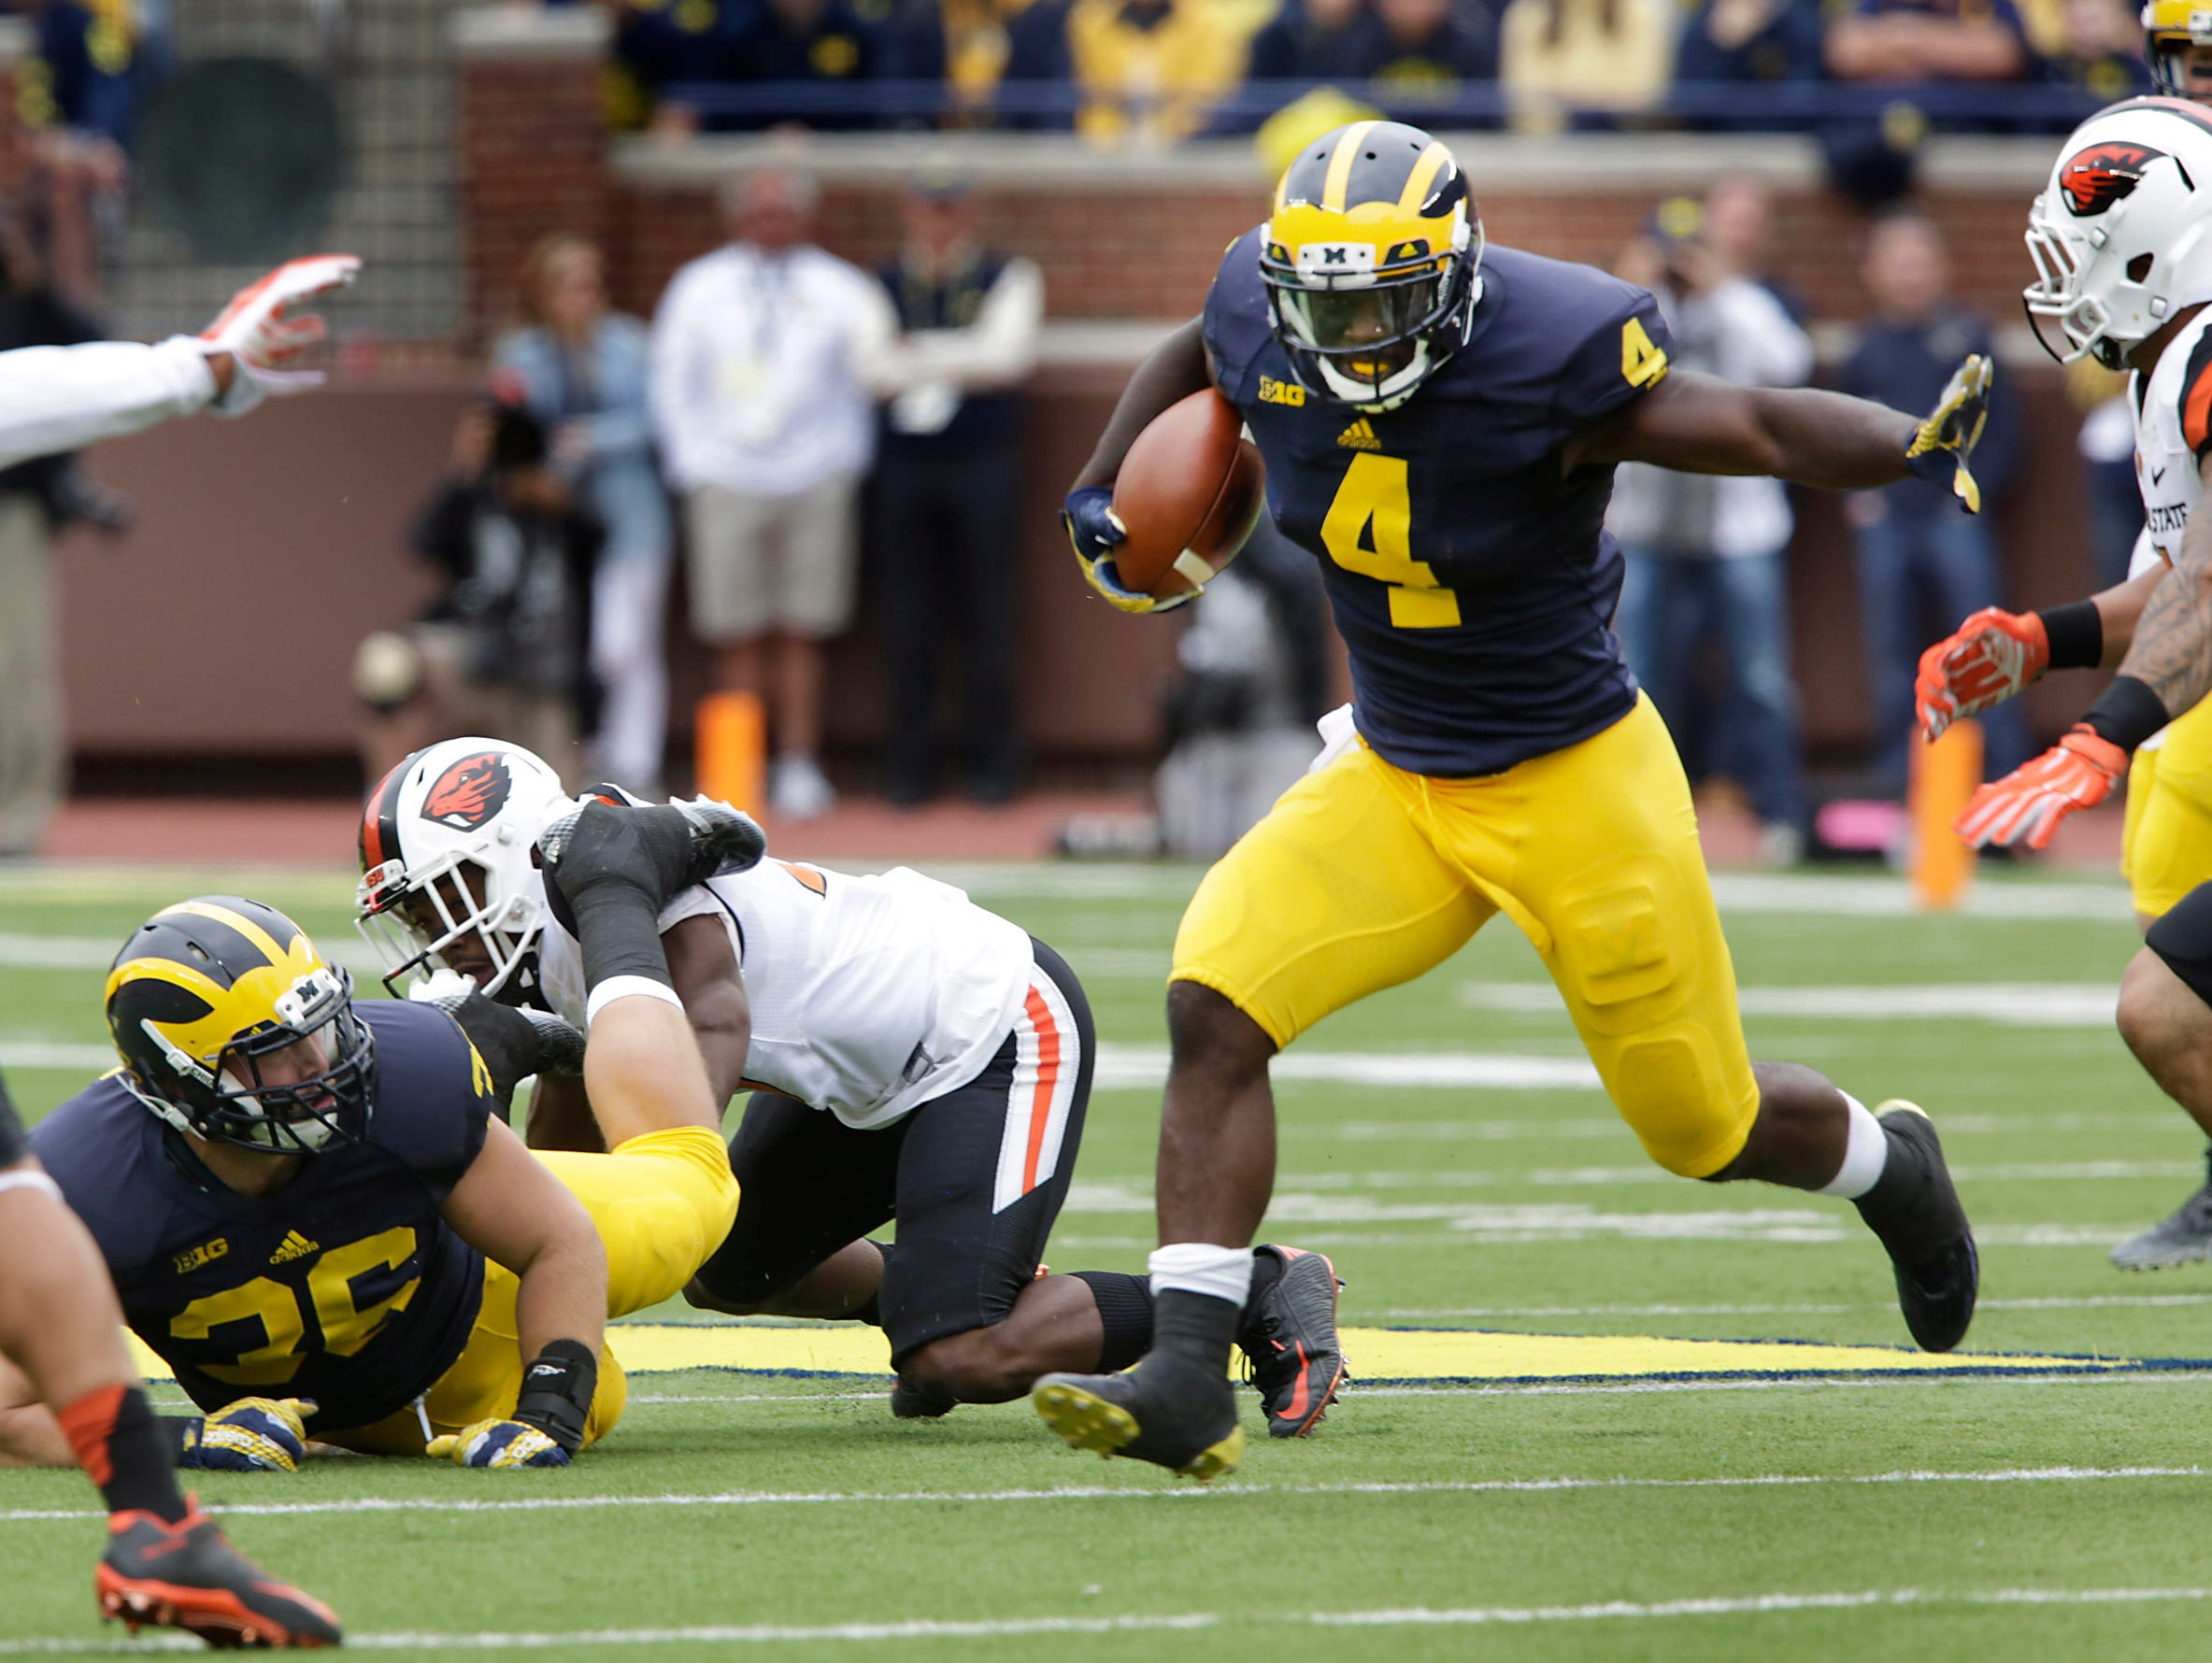 Michigan 's De'Veon Smith runs for yardage during 1st half action between Michigan and Oregon State on Saturday, Sept. 12, 2015 in Ann Arbor.